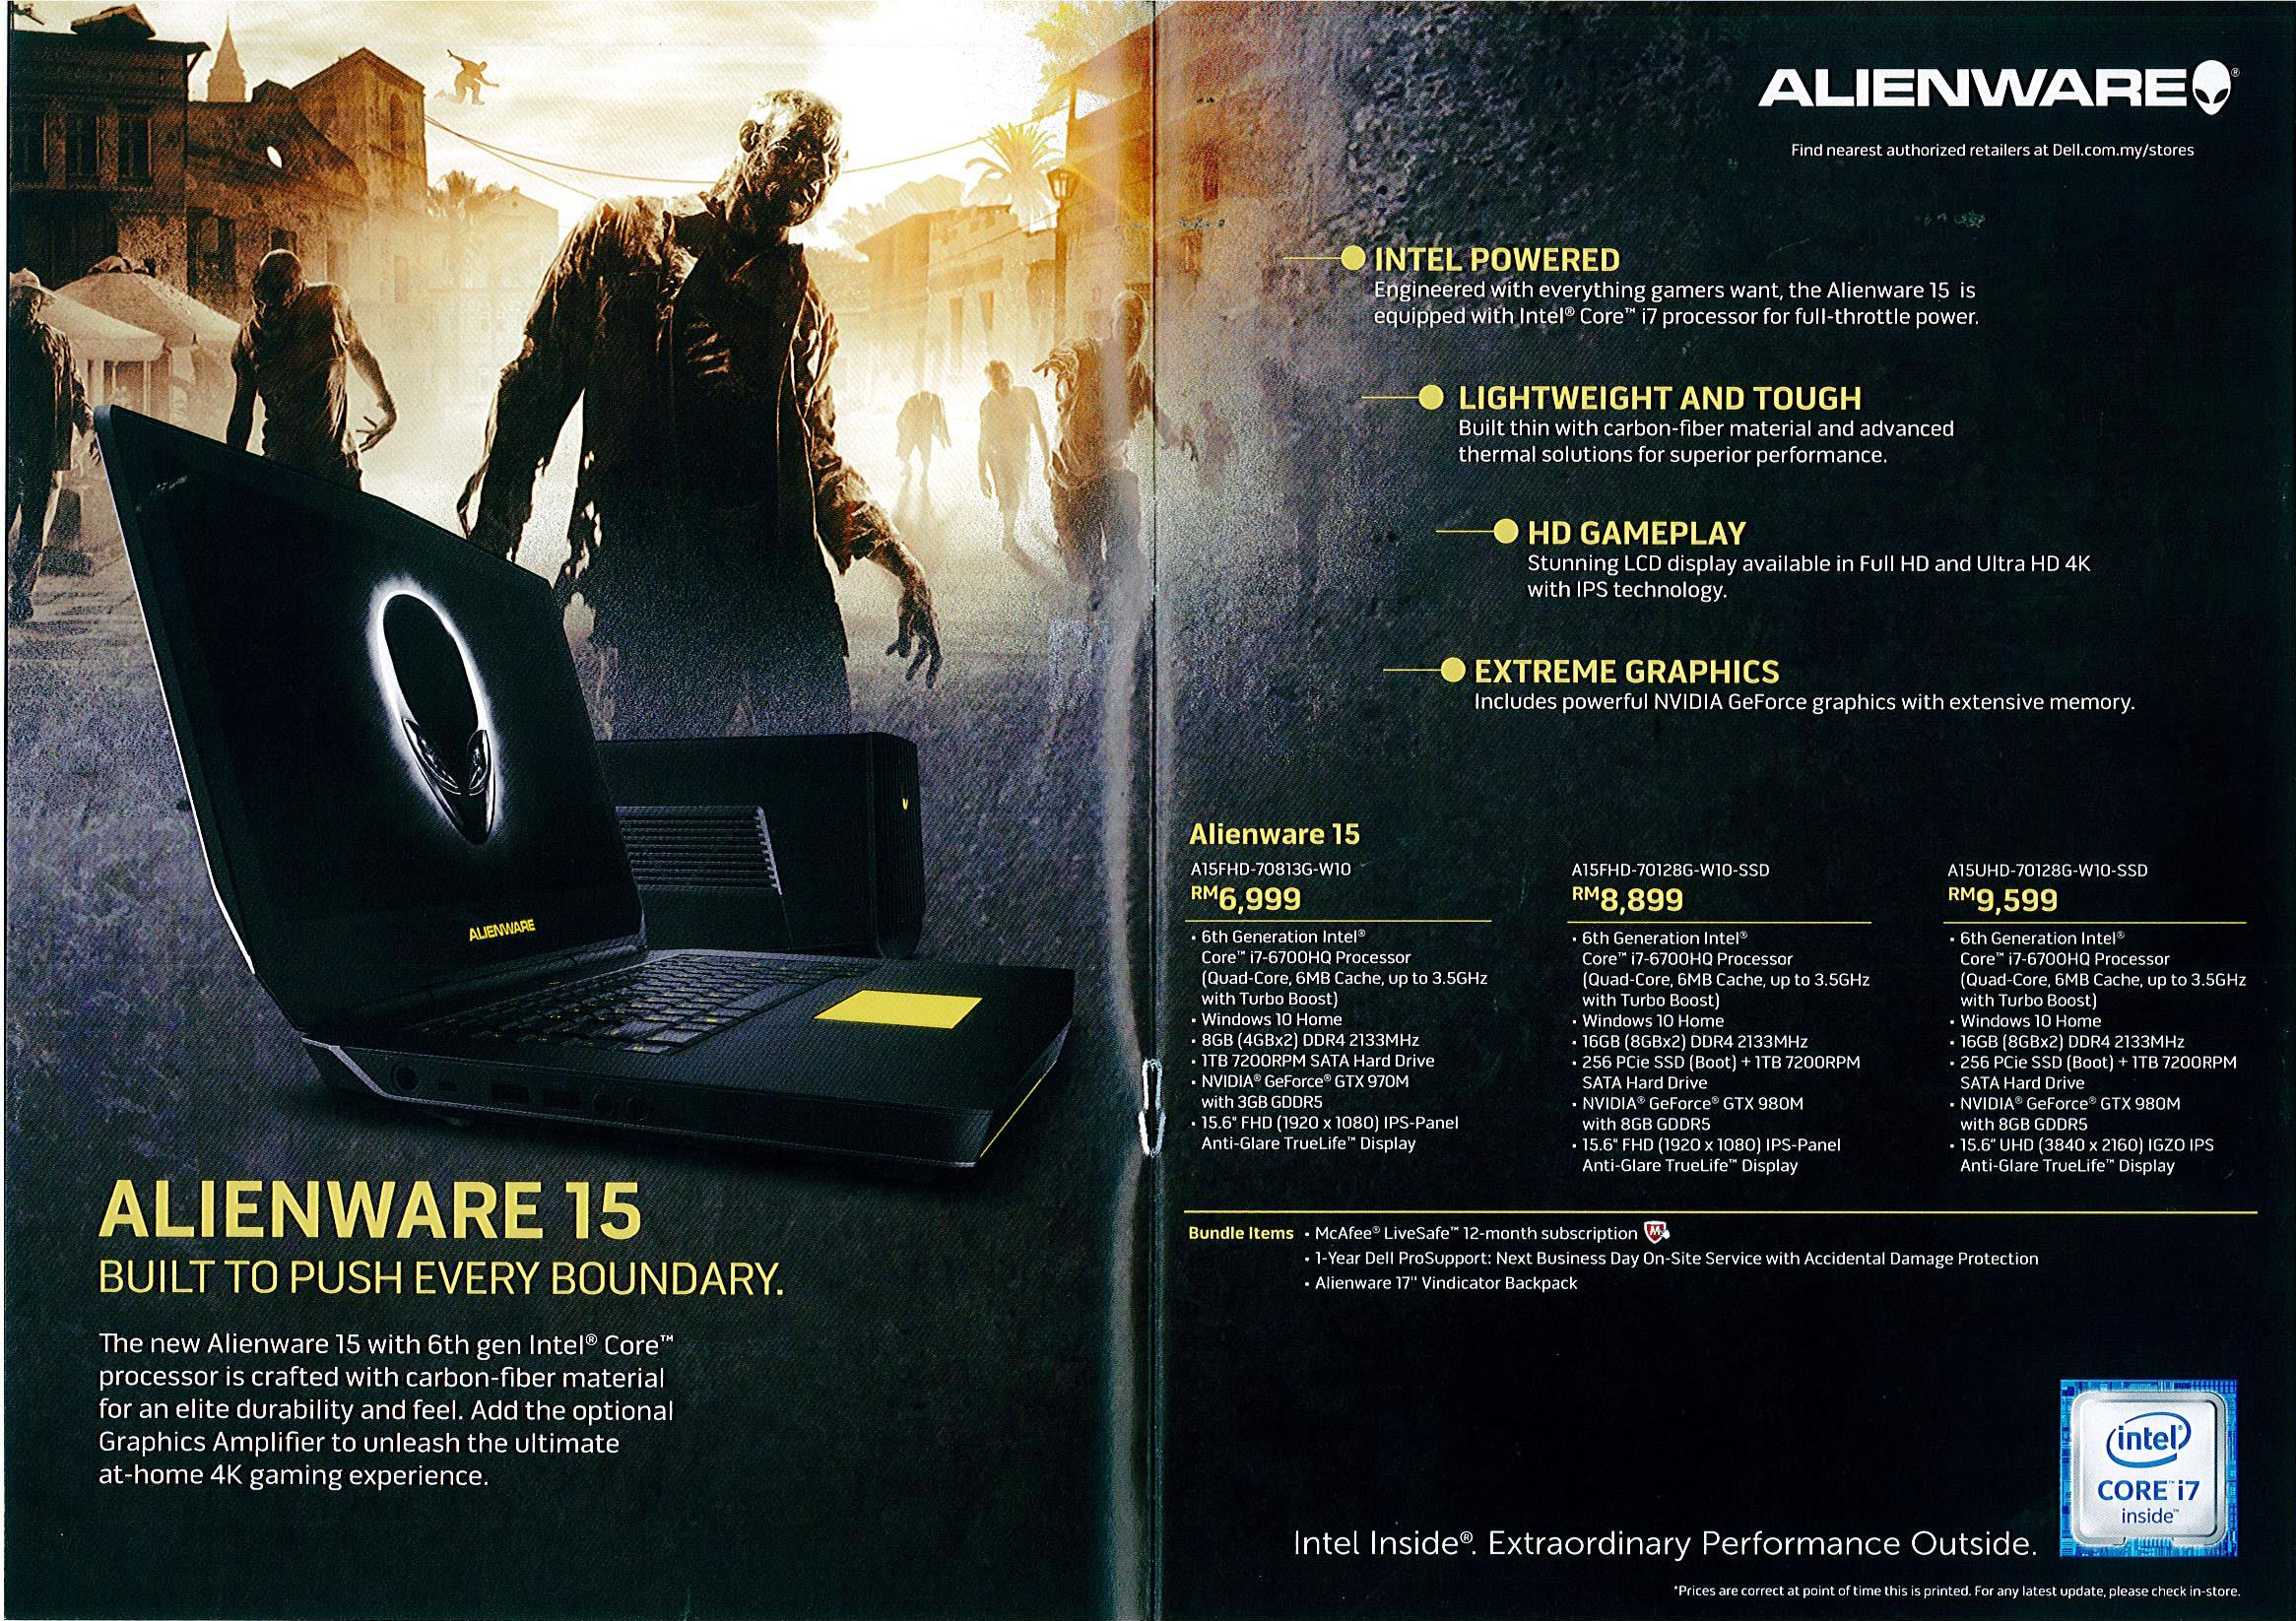 Alienware Page 3 Brochures from Malaysia MITG Expo on Tech Show